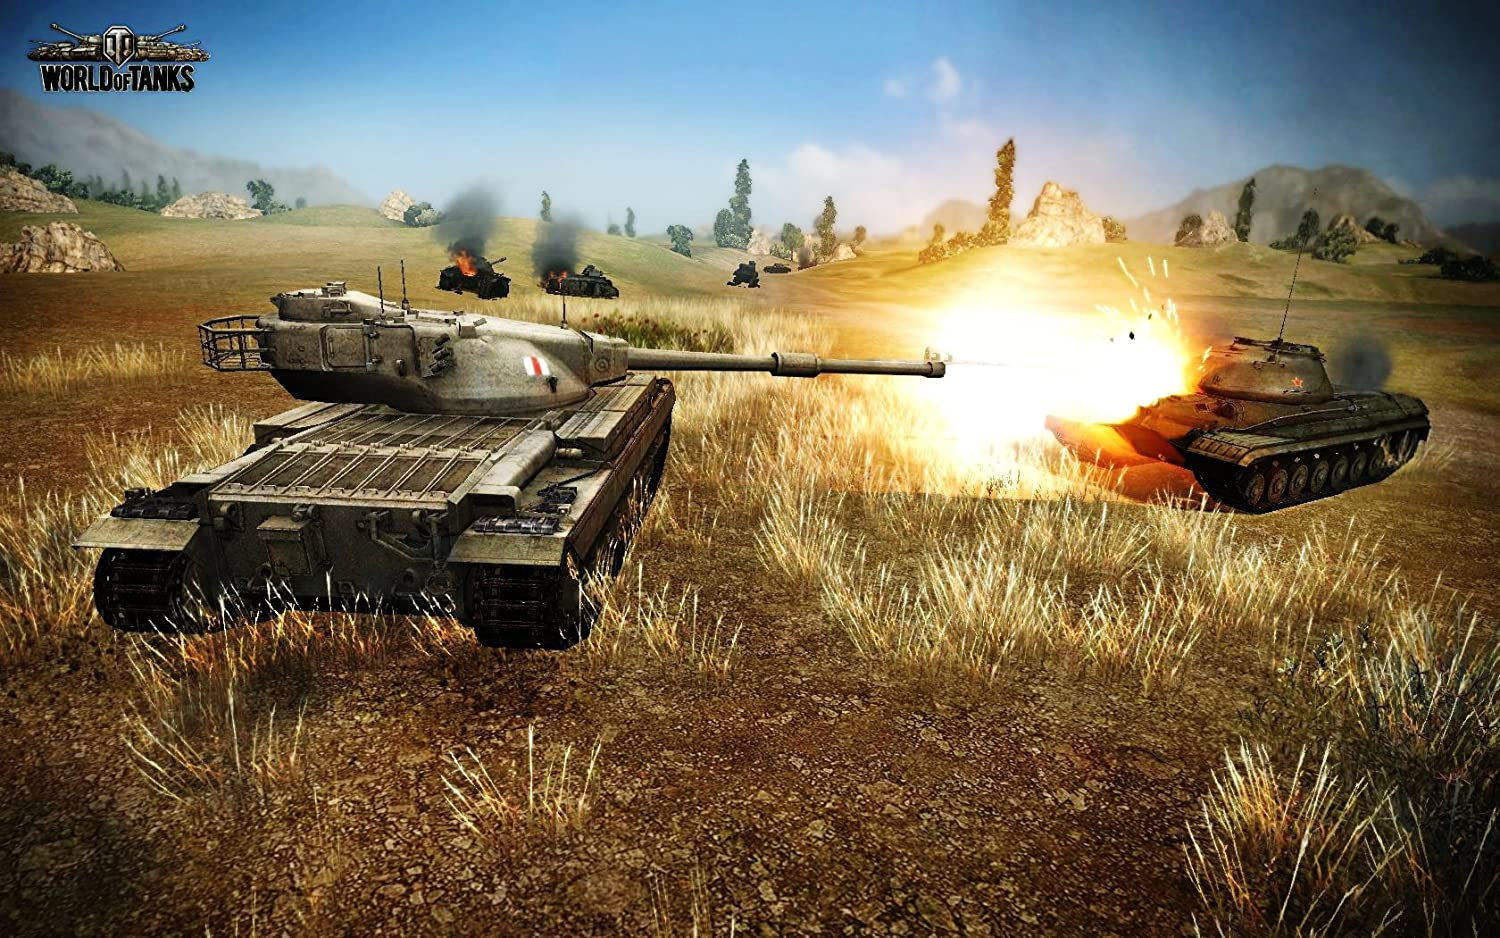 Amazon com: World of Tanks - Expert Pack [Online Game Code]: Video Games